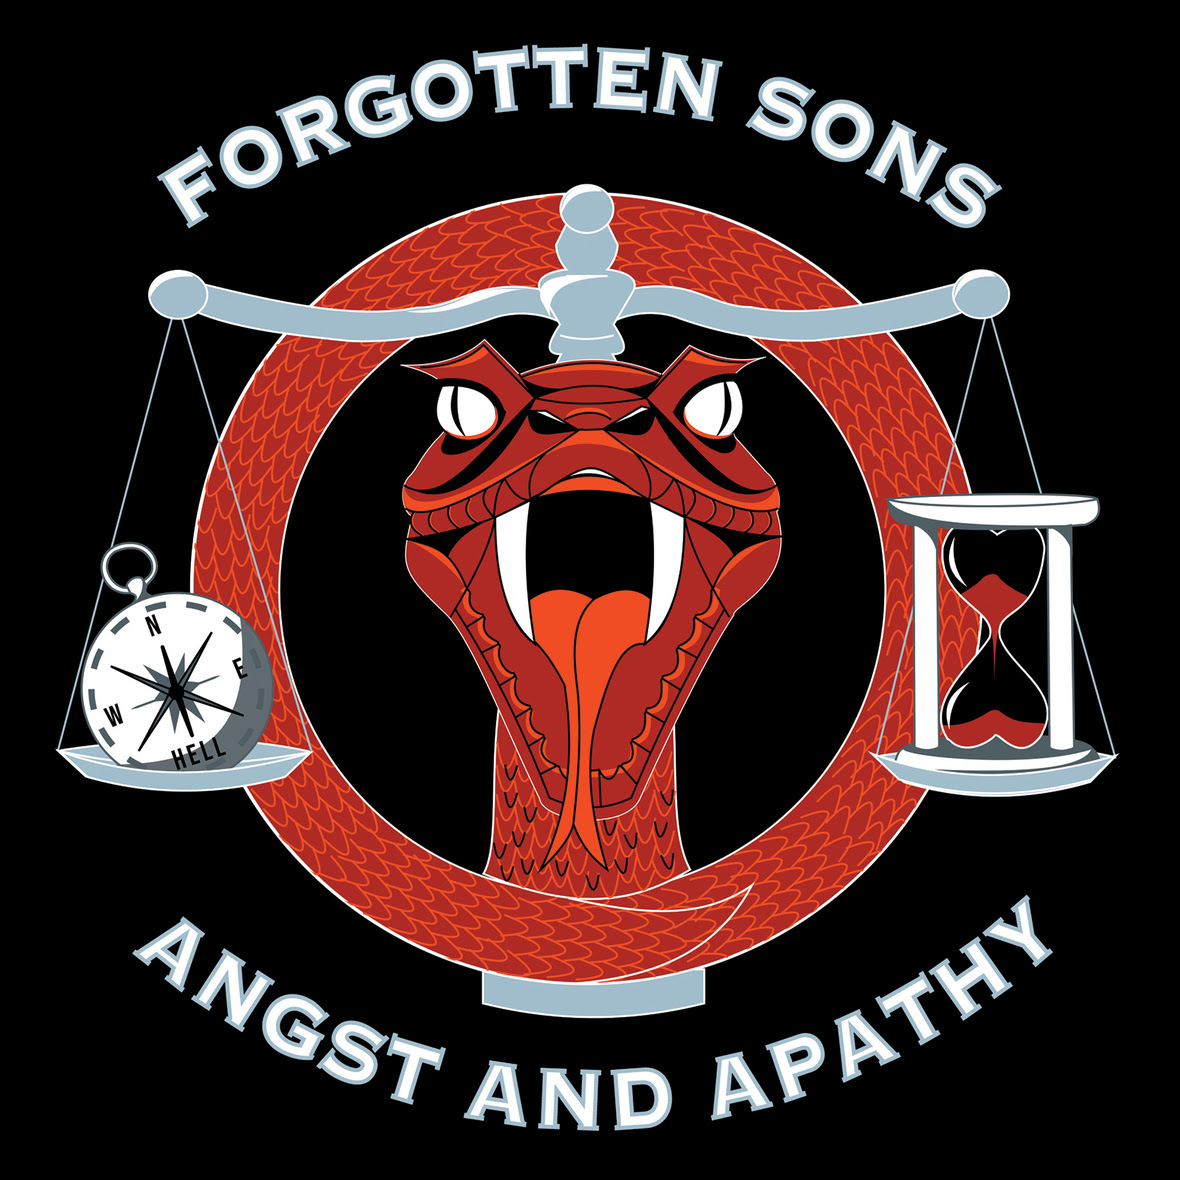 cover art - angst and apathy